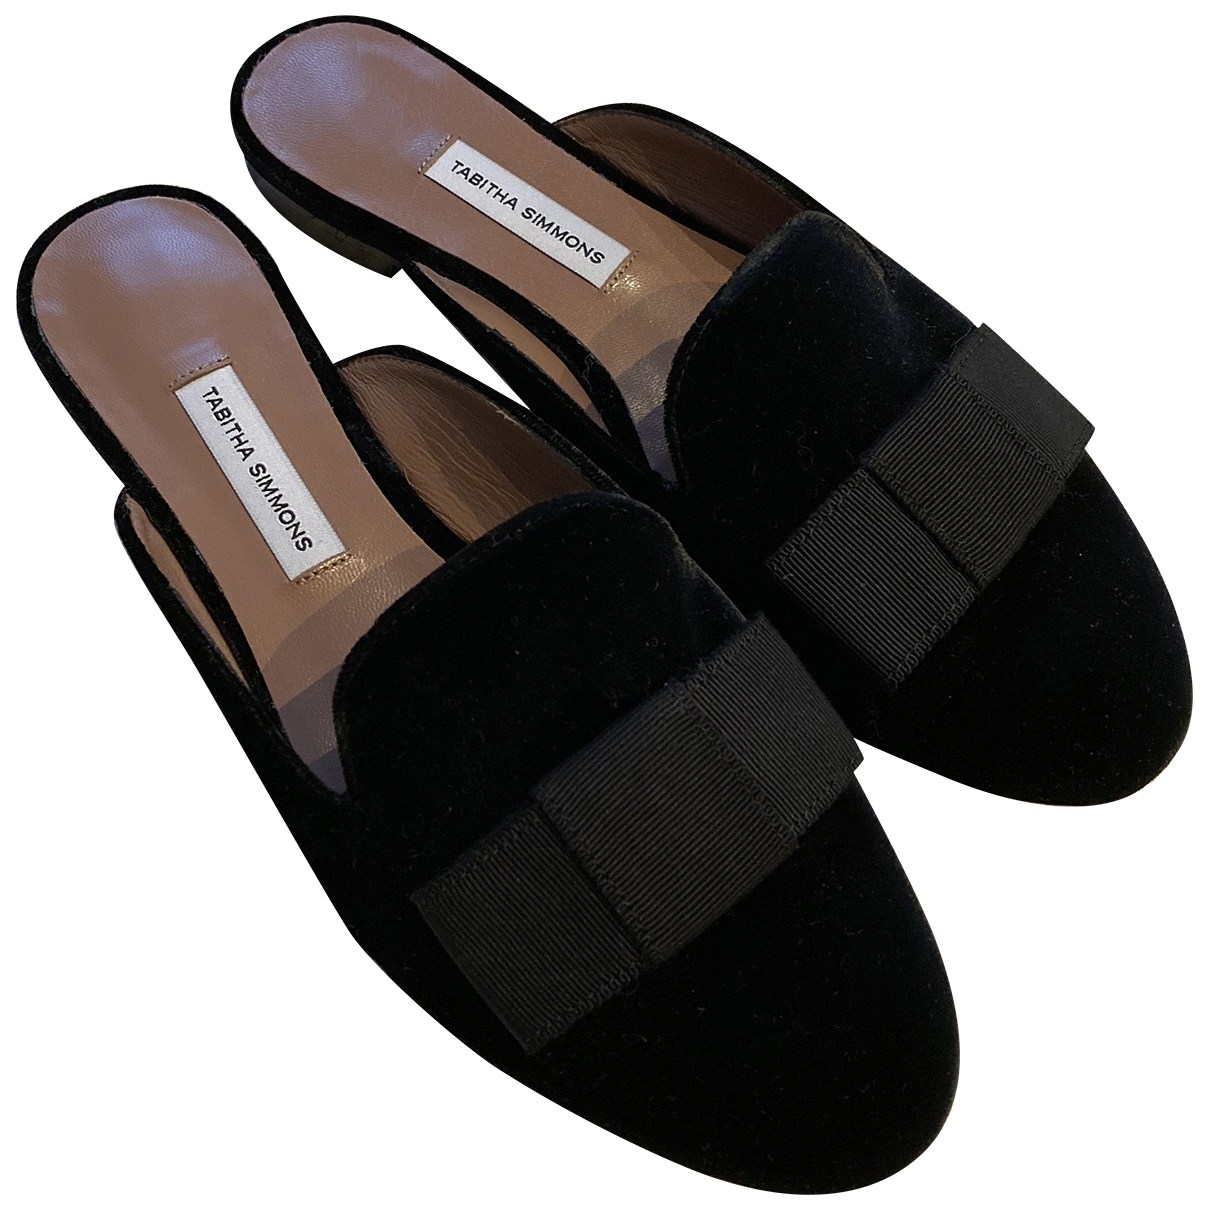 Tabitha Simmons \N Black Velvet Mules & Clogs for Women 36.5 EU